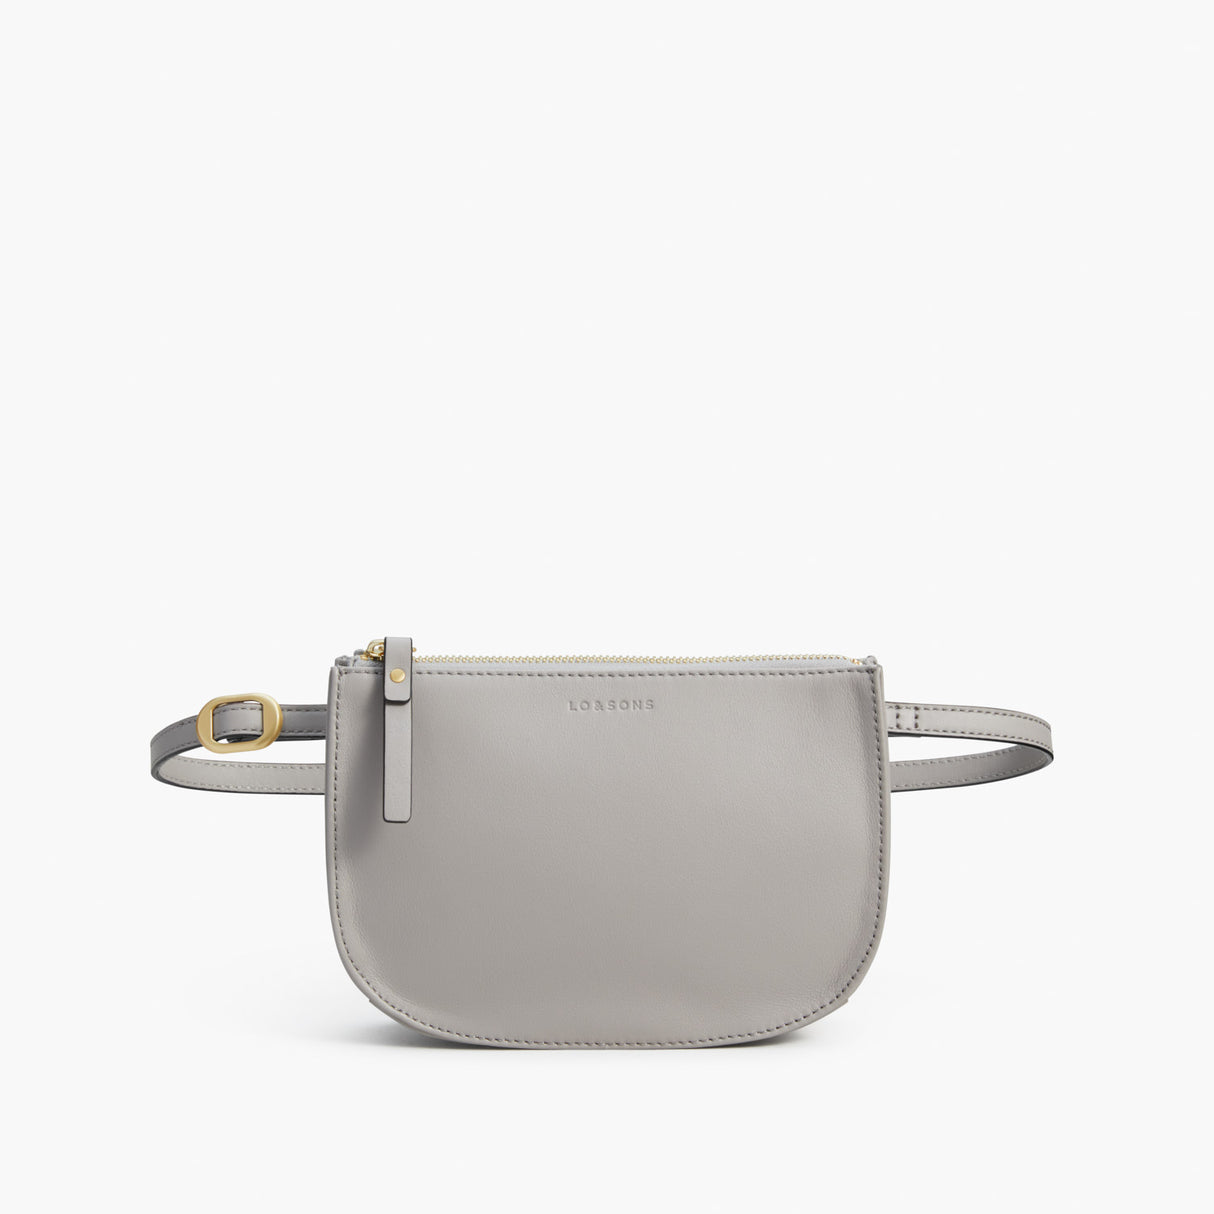 Front Belt - The Waverley 2 - Nappa Leather - Light Grey / Gold / Grey - Crossbody - Lo & Sons